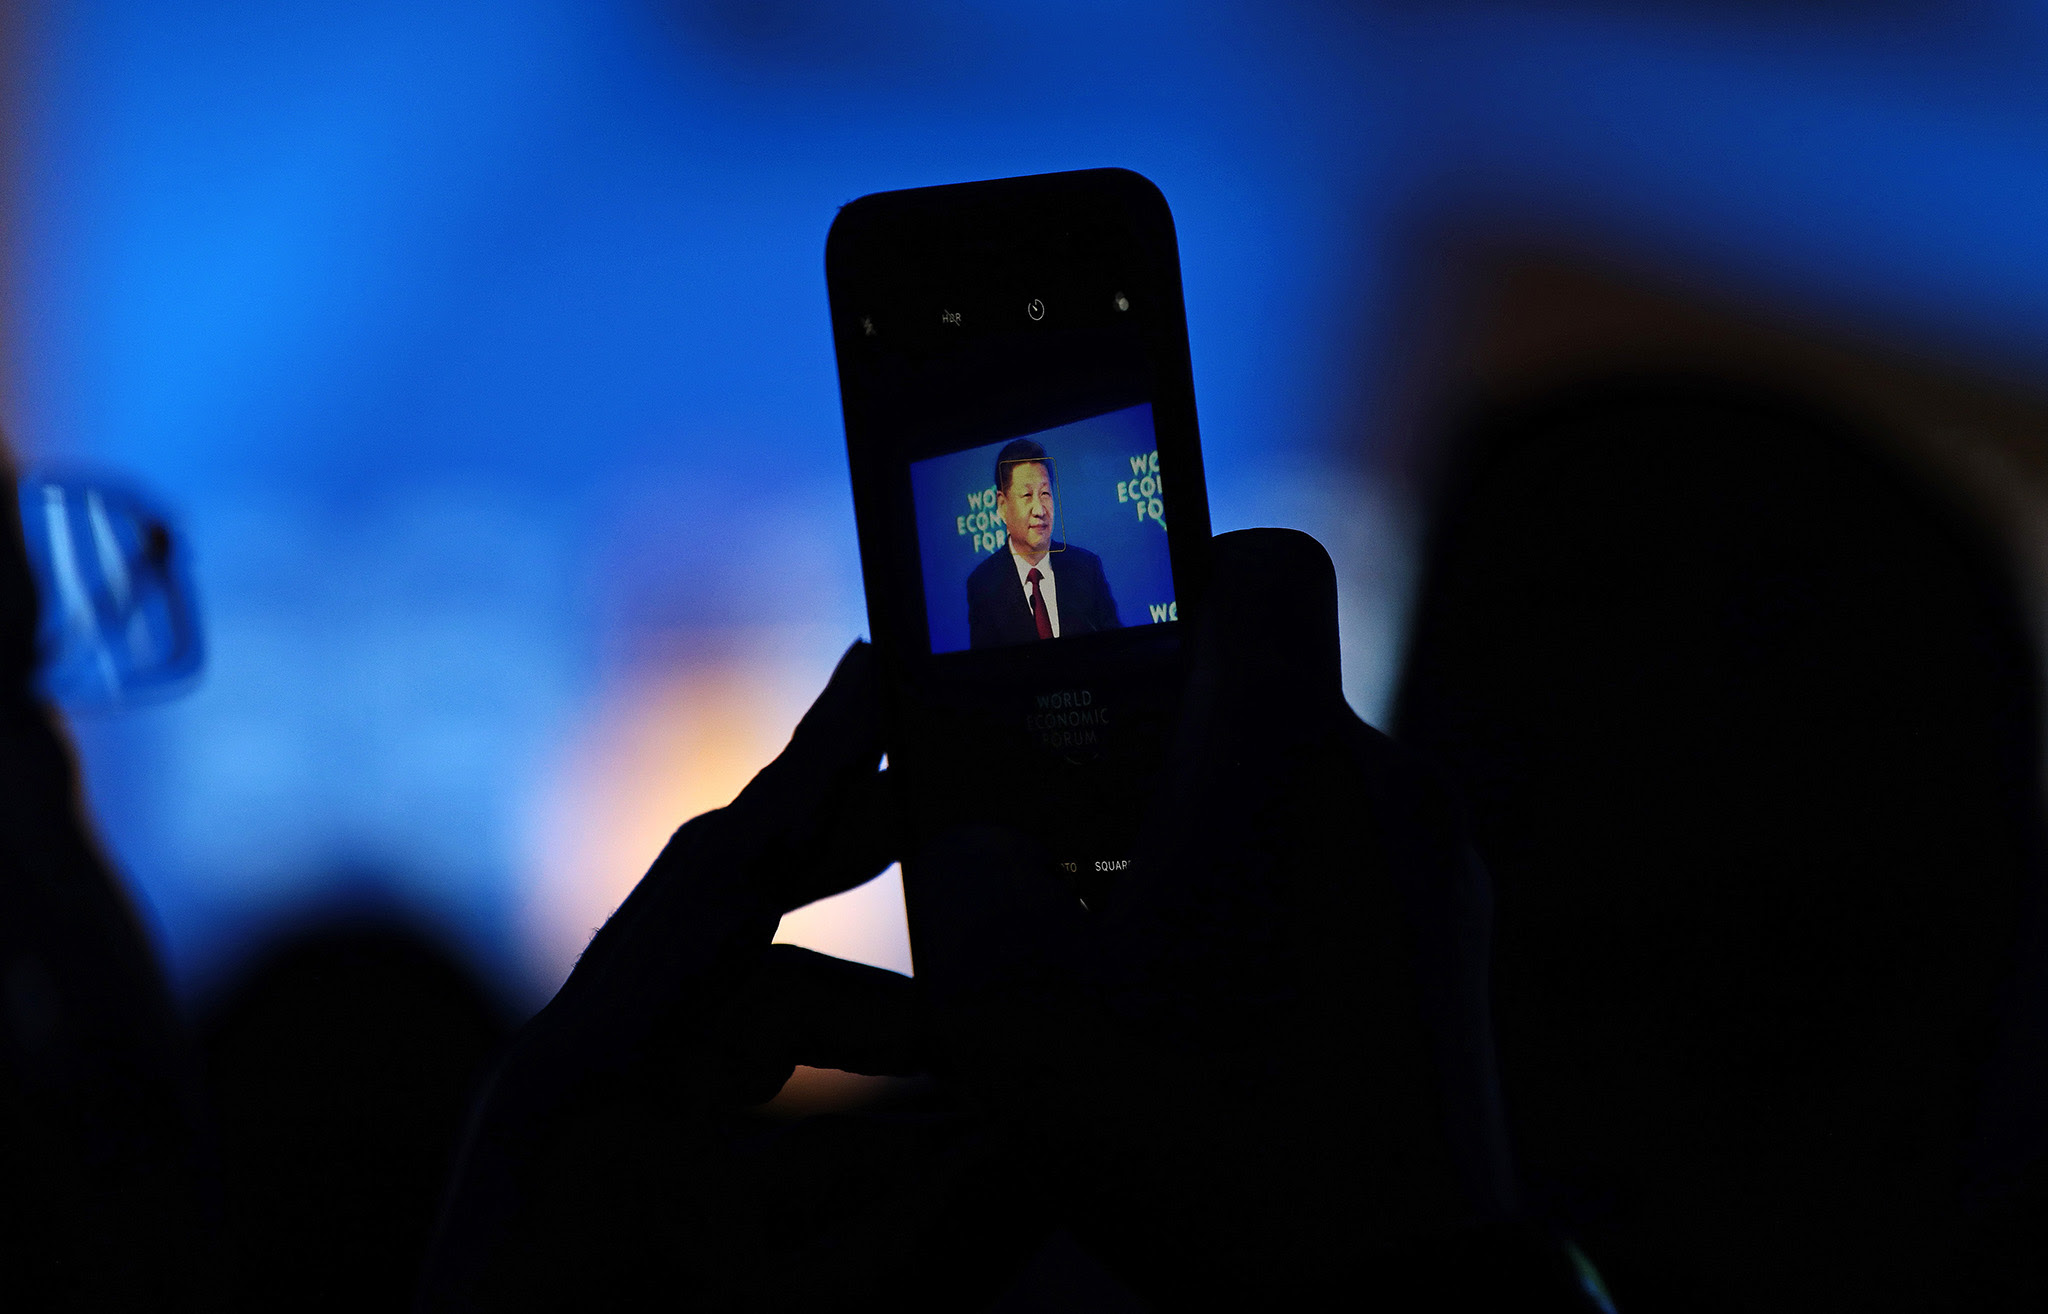 An attendee films Xi Jinping, China's president, on a mobile device as he speaks during the opening plenary session of the World Economic Forum (WEF) annual meeting in Davos, Switzerland, on Tuesday, Jan. 17, 2017. World leaders, influential executives, bankers and policy makers attend the 47th annual meeting of the World Economic Forum (WEF) in Davos from Jan. 17-20. Photographer: Simon Dawson/Bloomberg